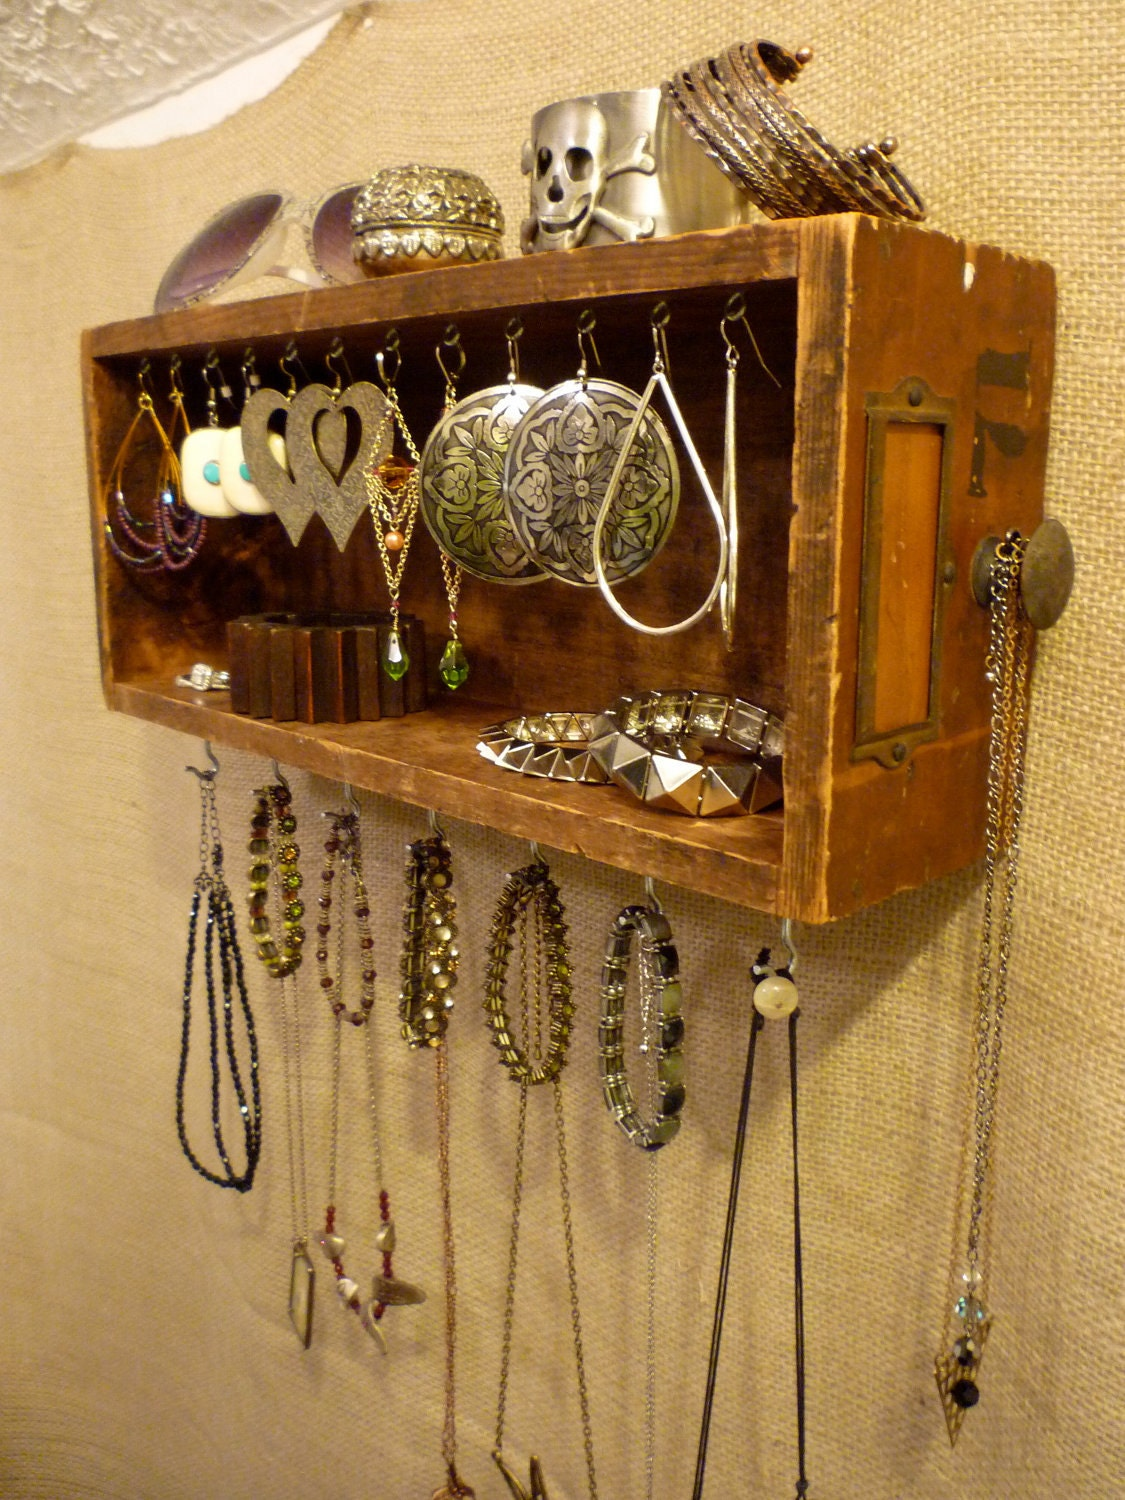 upcycled jewelry organizing display wood drawer 71. Black Bedroom Furniture Sets. Home Design Ideas